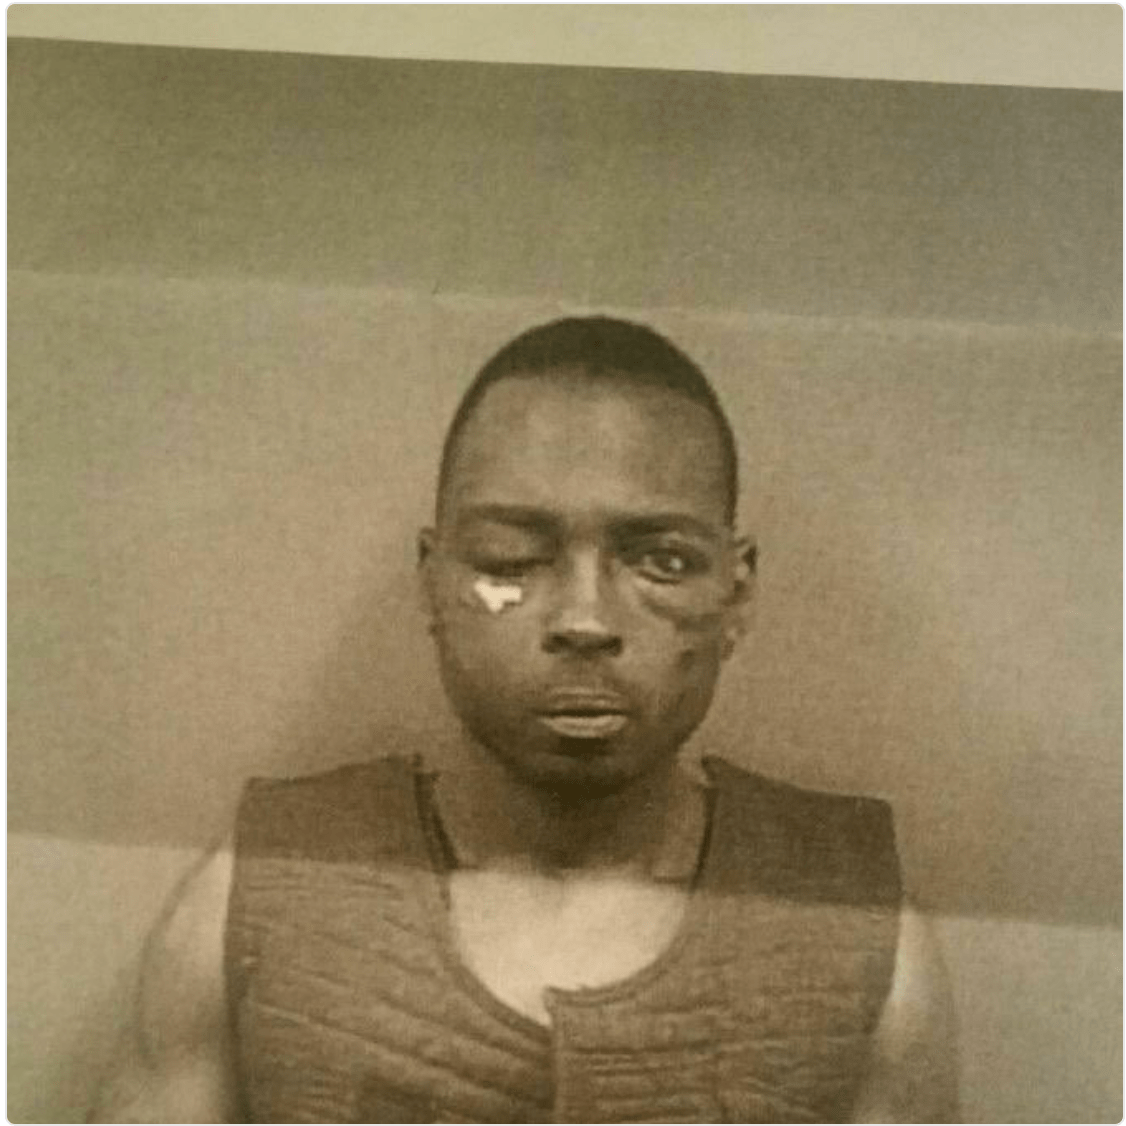 Erie, PA (January 28, 2016) Image of Montrice Bolden's injuries that were sustained by Erie Police Department Officers DeLuca, Stadler, Sack, and Bush (two other officers can not be named at this time). This photograph was taken two weeks after the arrest. Bolden remains in the Erie County Prison. (Photo Credit: Lauren Benzo )